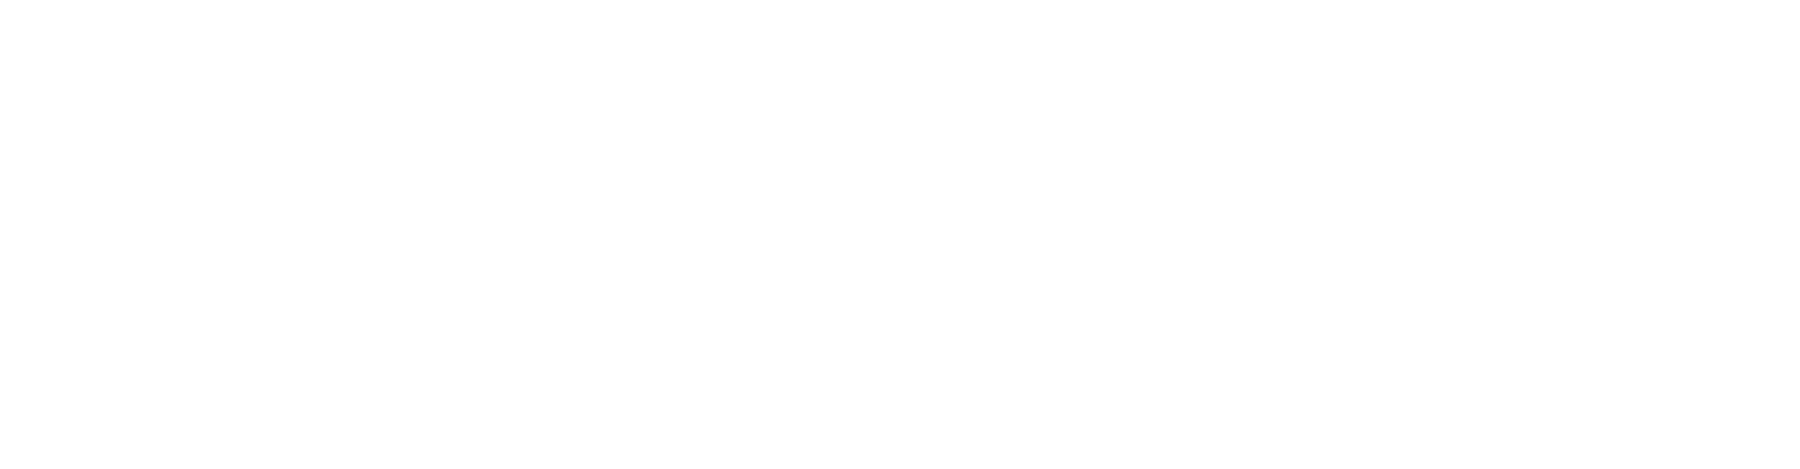 Closeddoorsrecords